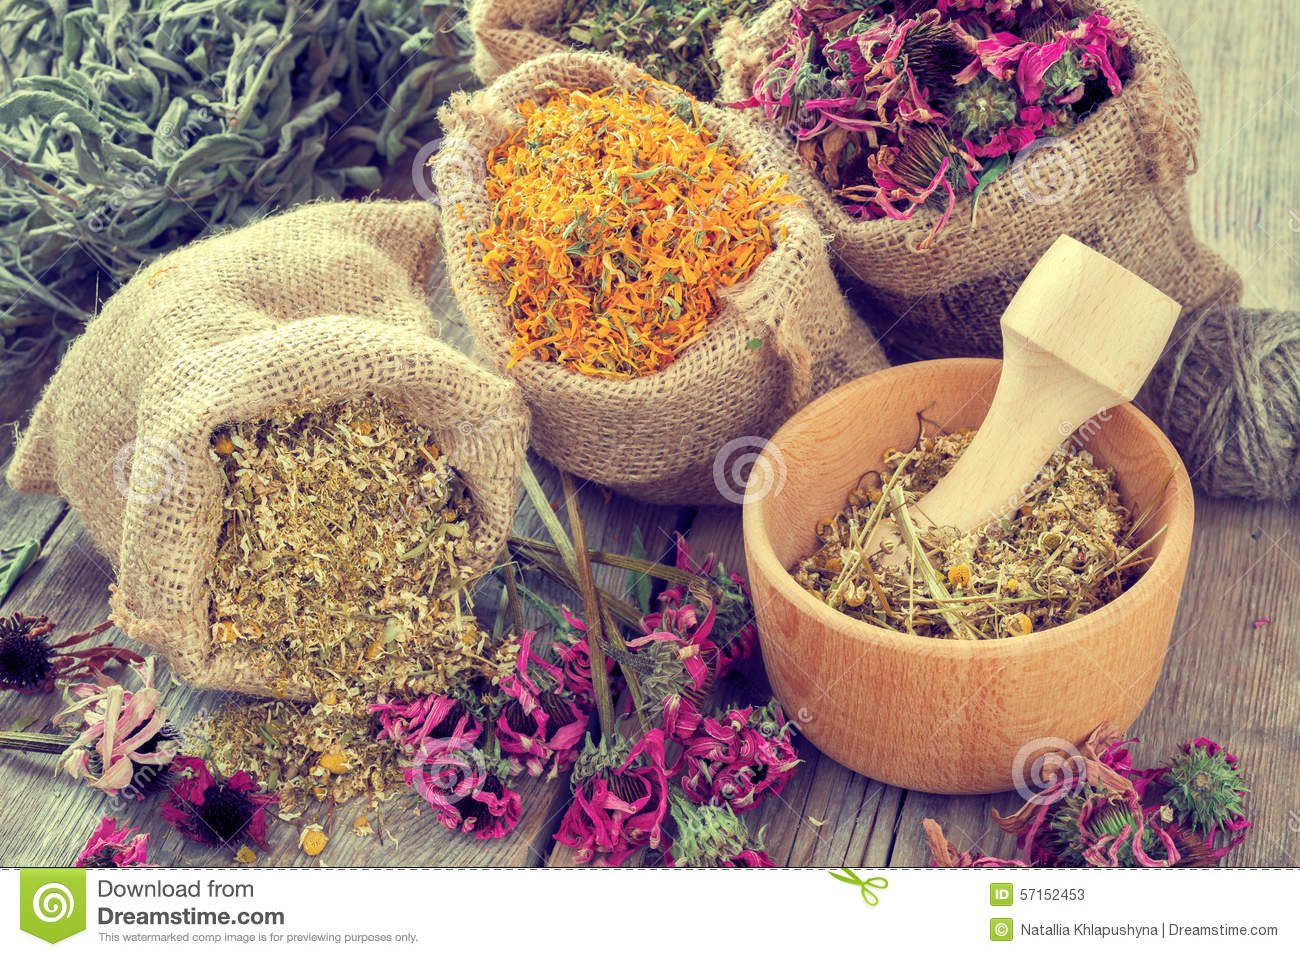 Healing herbs in hessian bags, mortar with chamomile